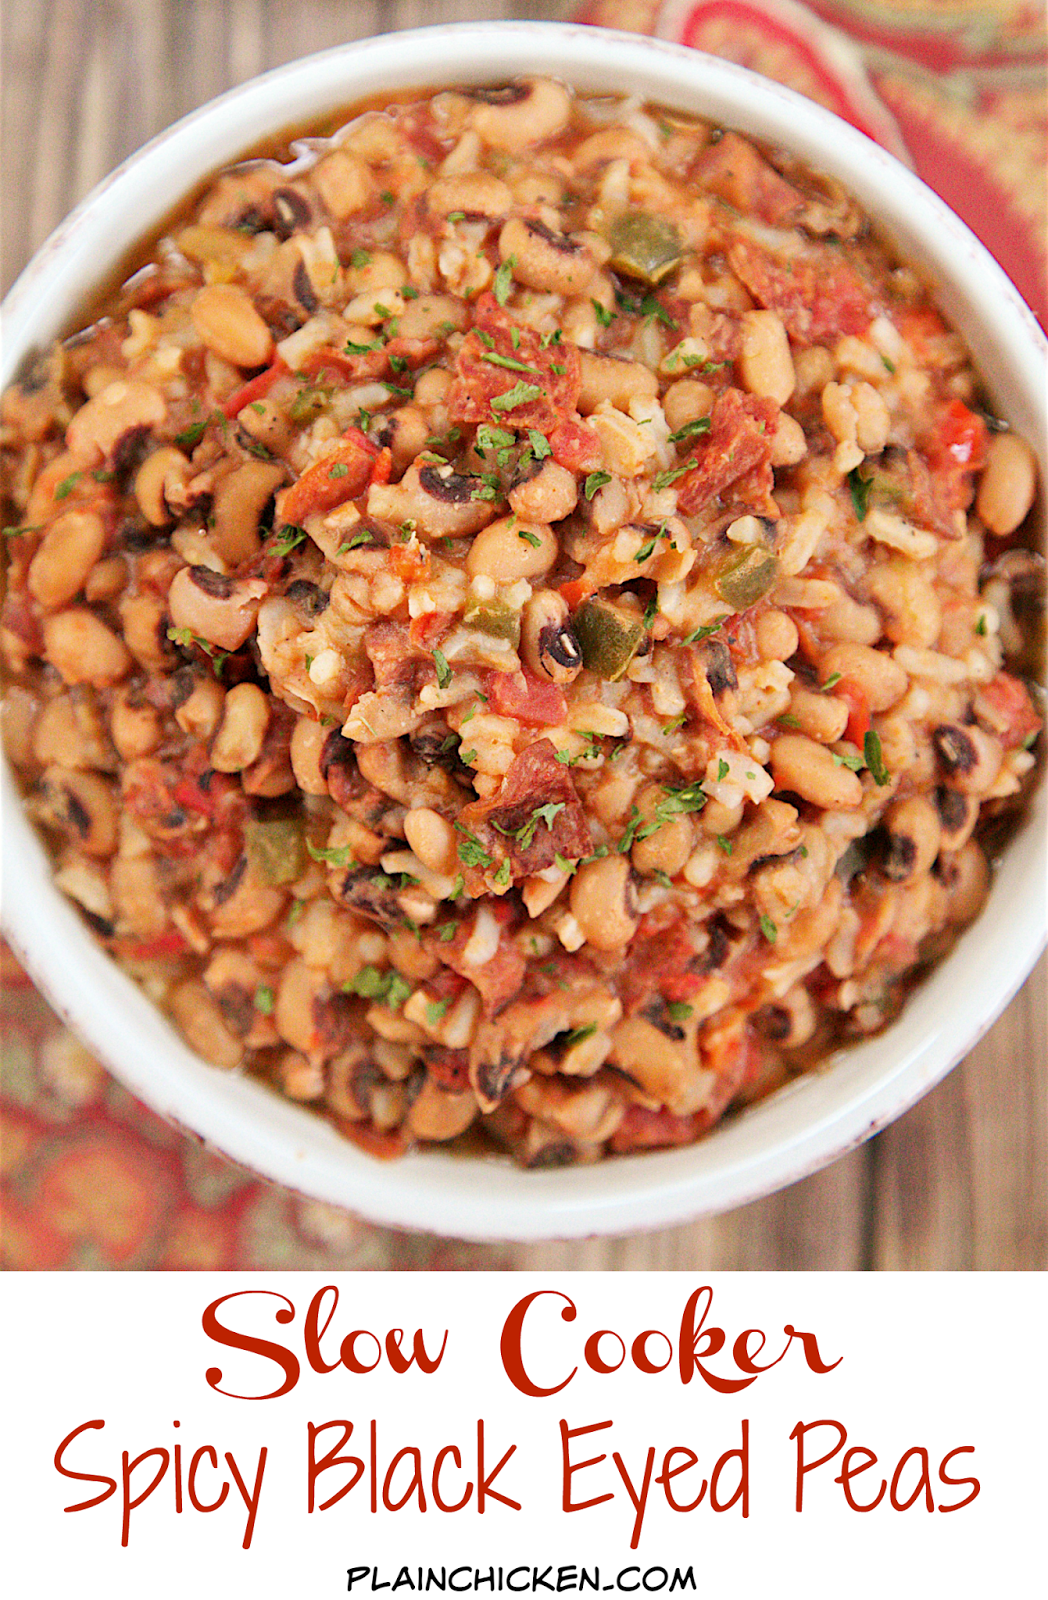 Slow Cooker Spicy Black Eyed Peas - black eyed peas, chicken broth, green onions, tomatoes, jalapeños , red pepper, pepperoni and rice. It is a meal in itself! Just add some greens and cornbread to complete the New Year's Day spread!